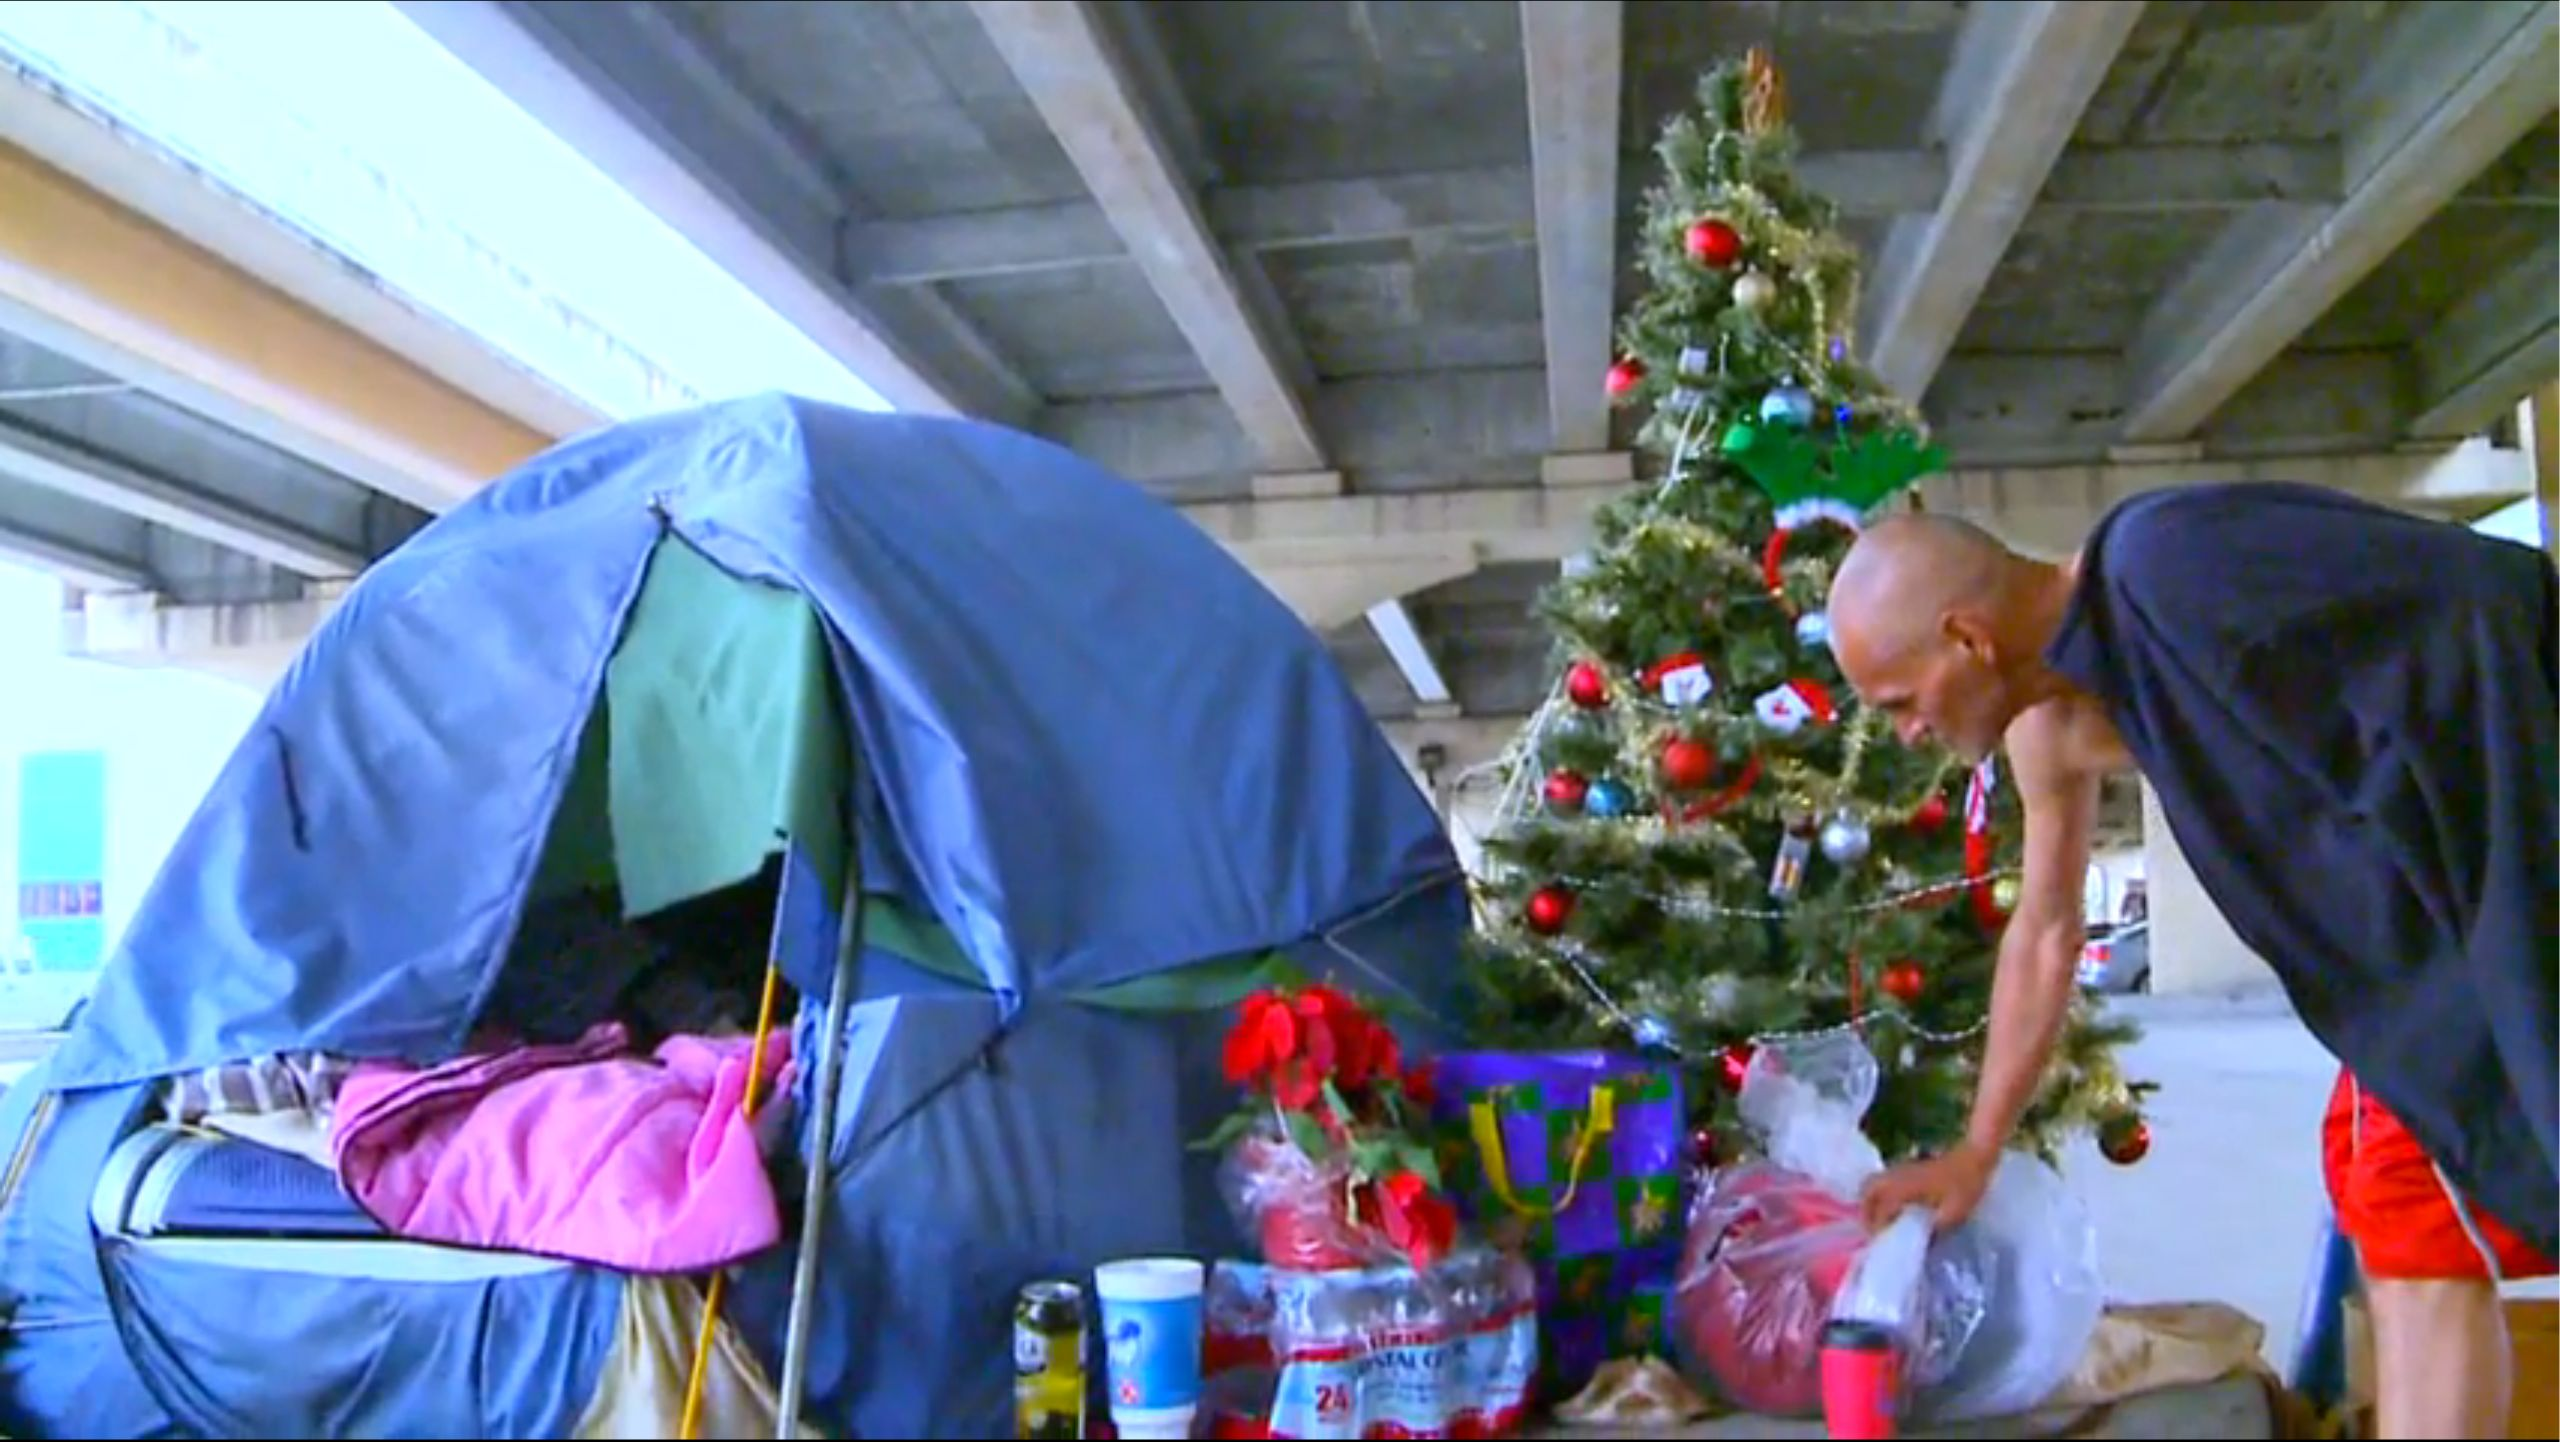 Image for After City Threw Away Homeless Man's Christmas Tree, Community Had Best Response